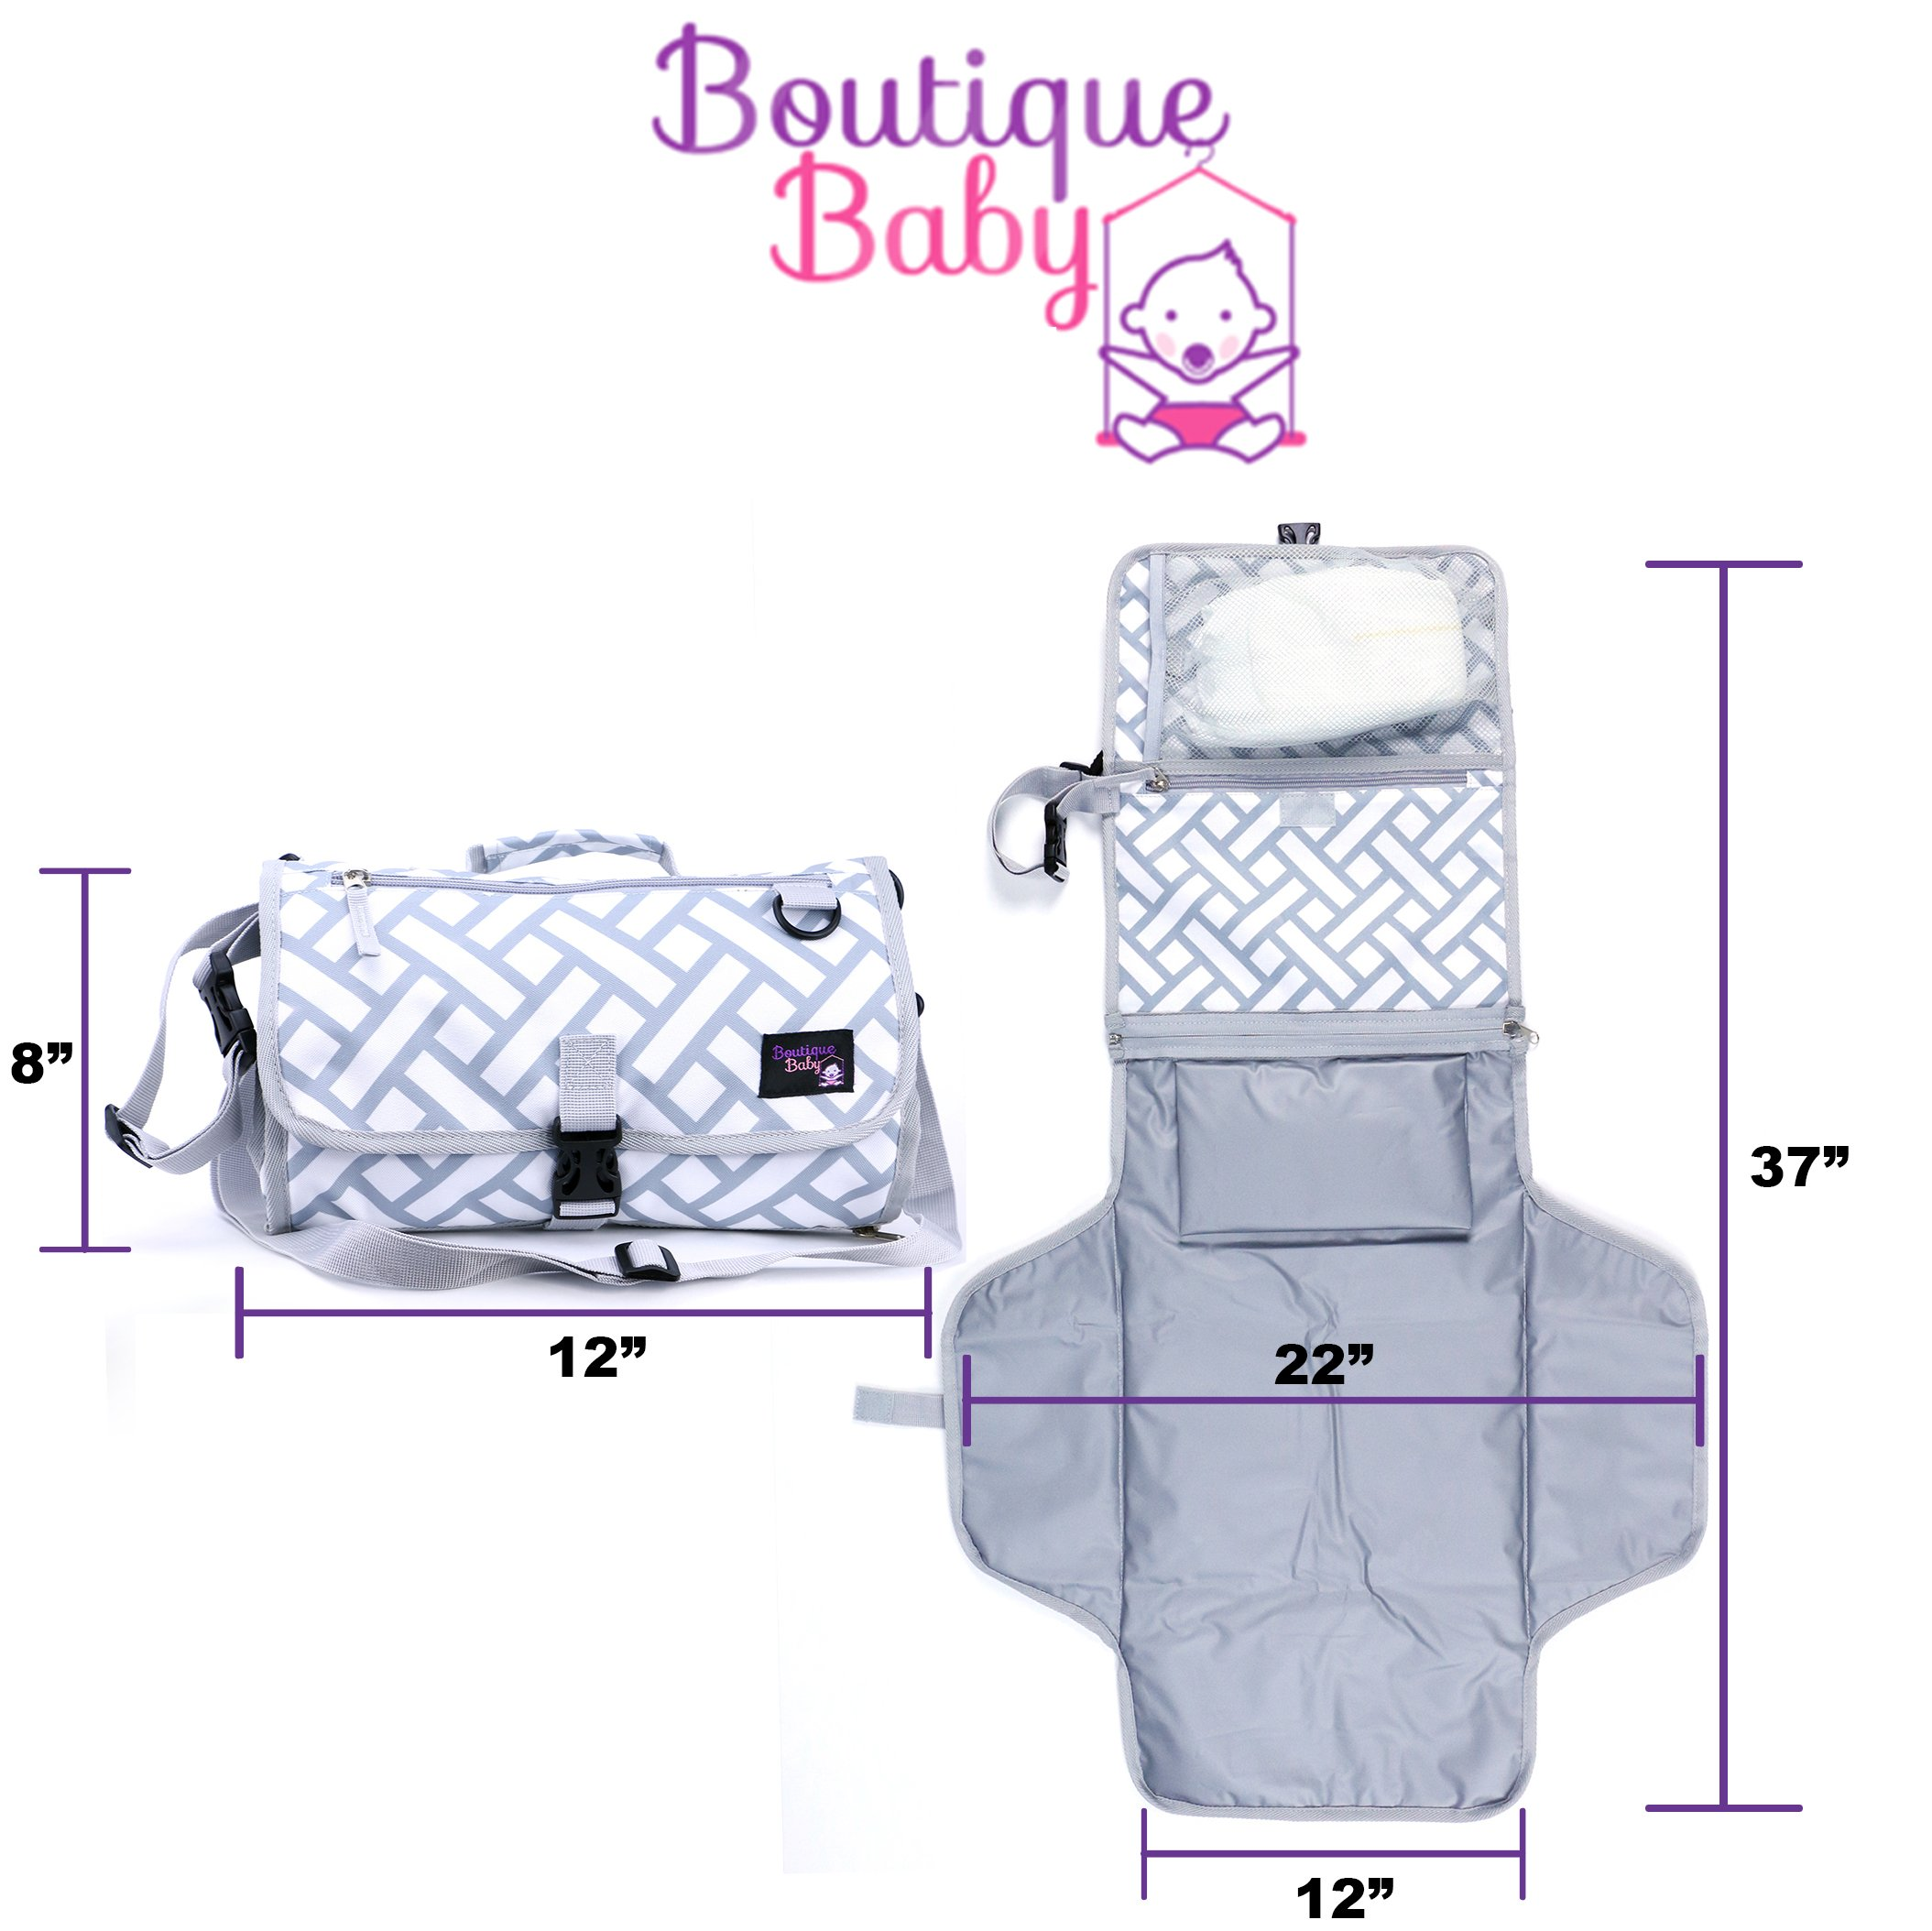 Baby Changing Pad By Boutique Baby Portable Diaper Changing Pad Station Waterproof Extra Long  Travel Clutch by Boutique Baby (Image #5)